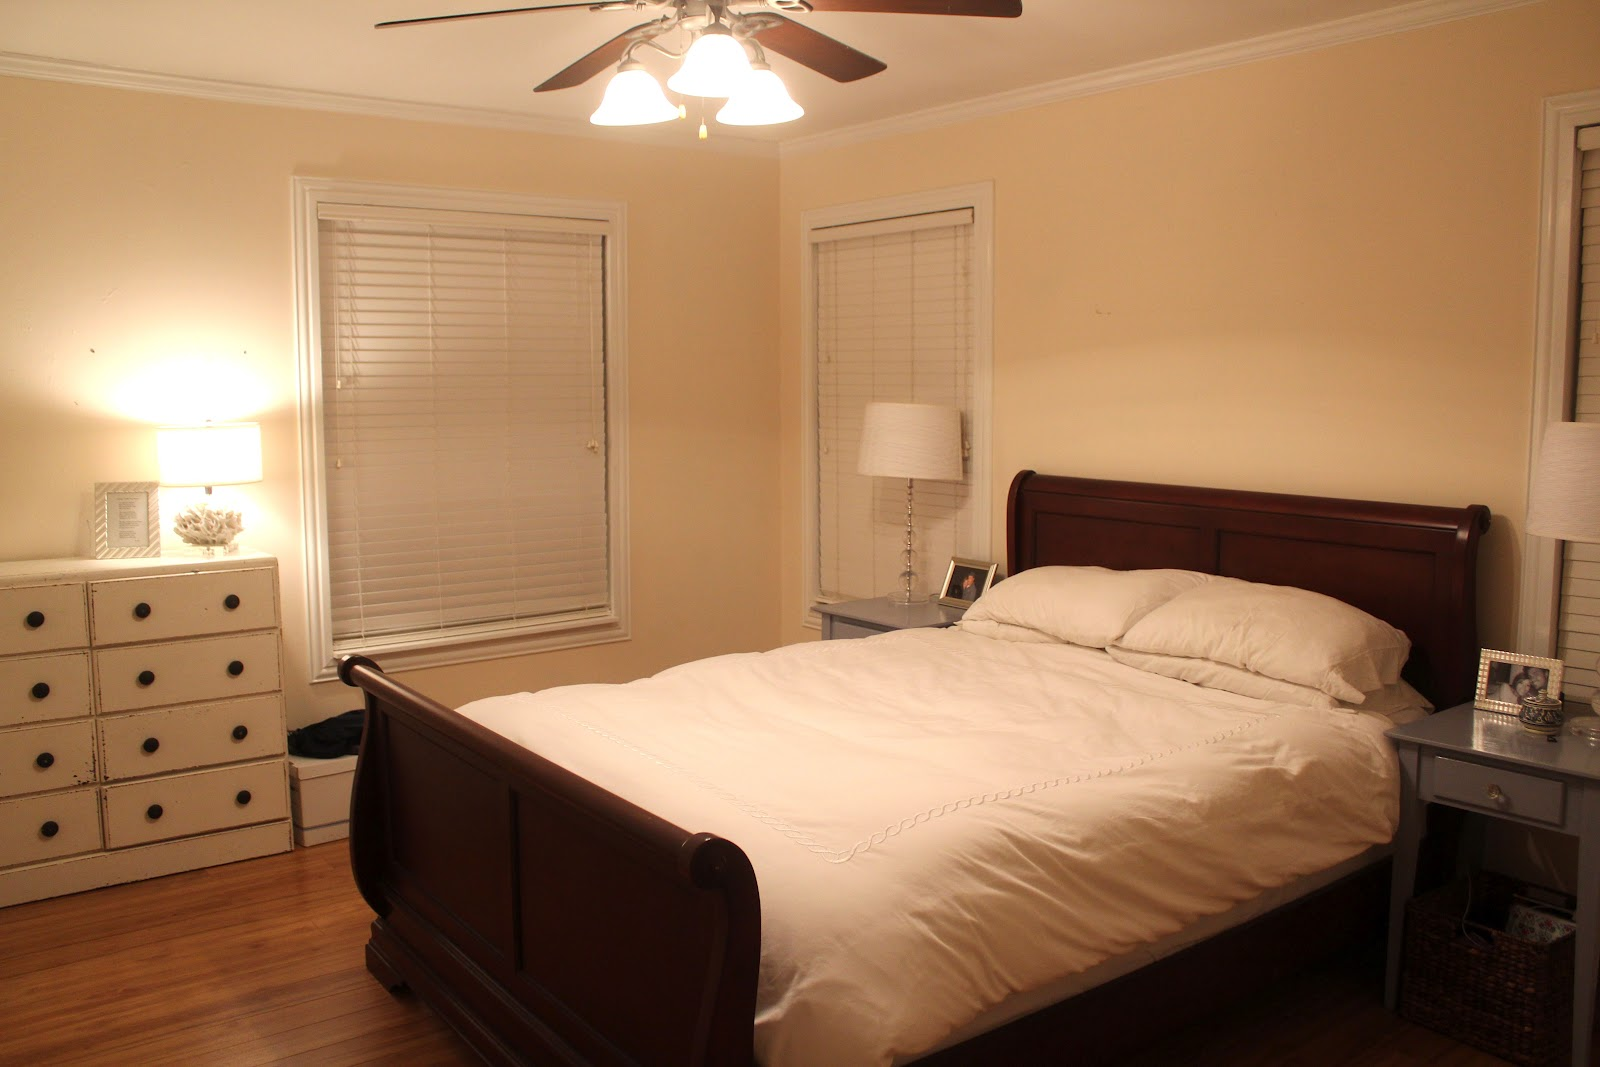 Fresh and fancy pick our paint colors master bedroom makeover How to paint a bedroom wall